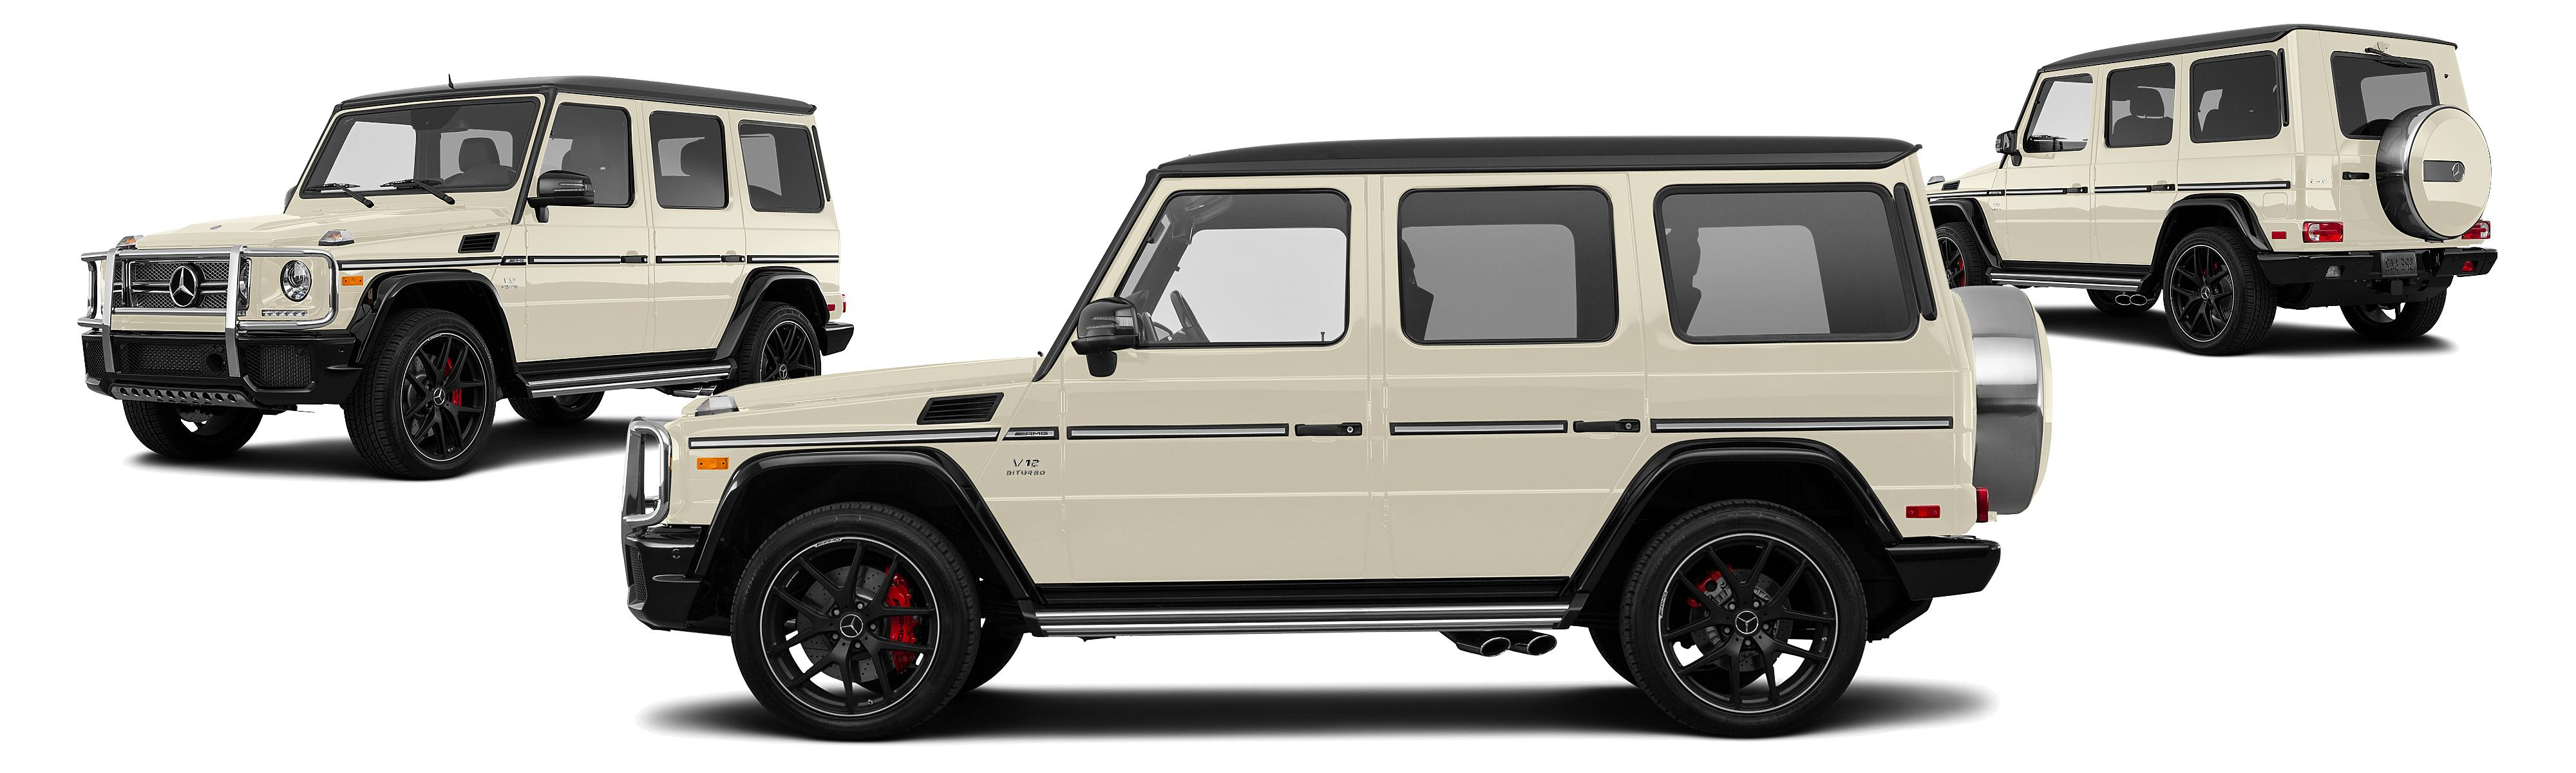 2017 mercedes benz g class awd amg g 65 4matic 4dr suv research rh groovecar com